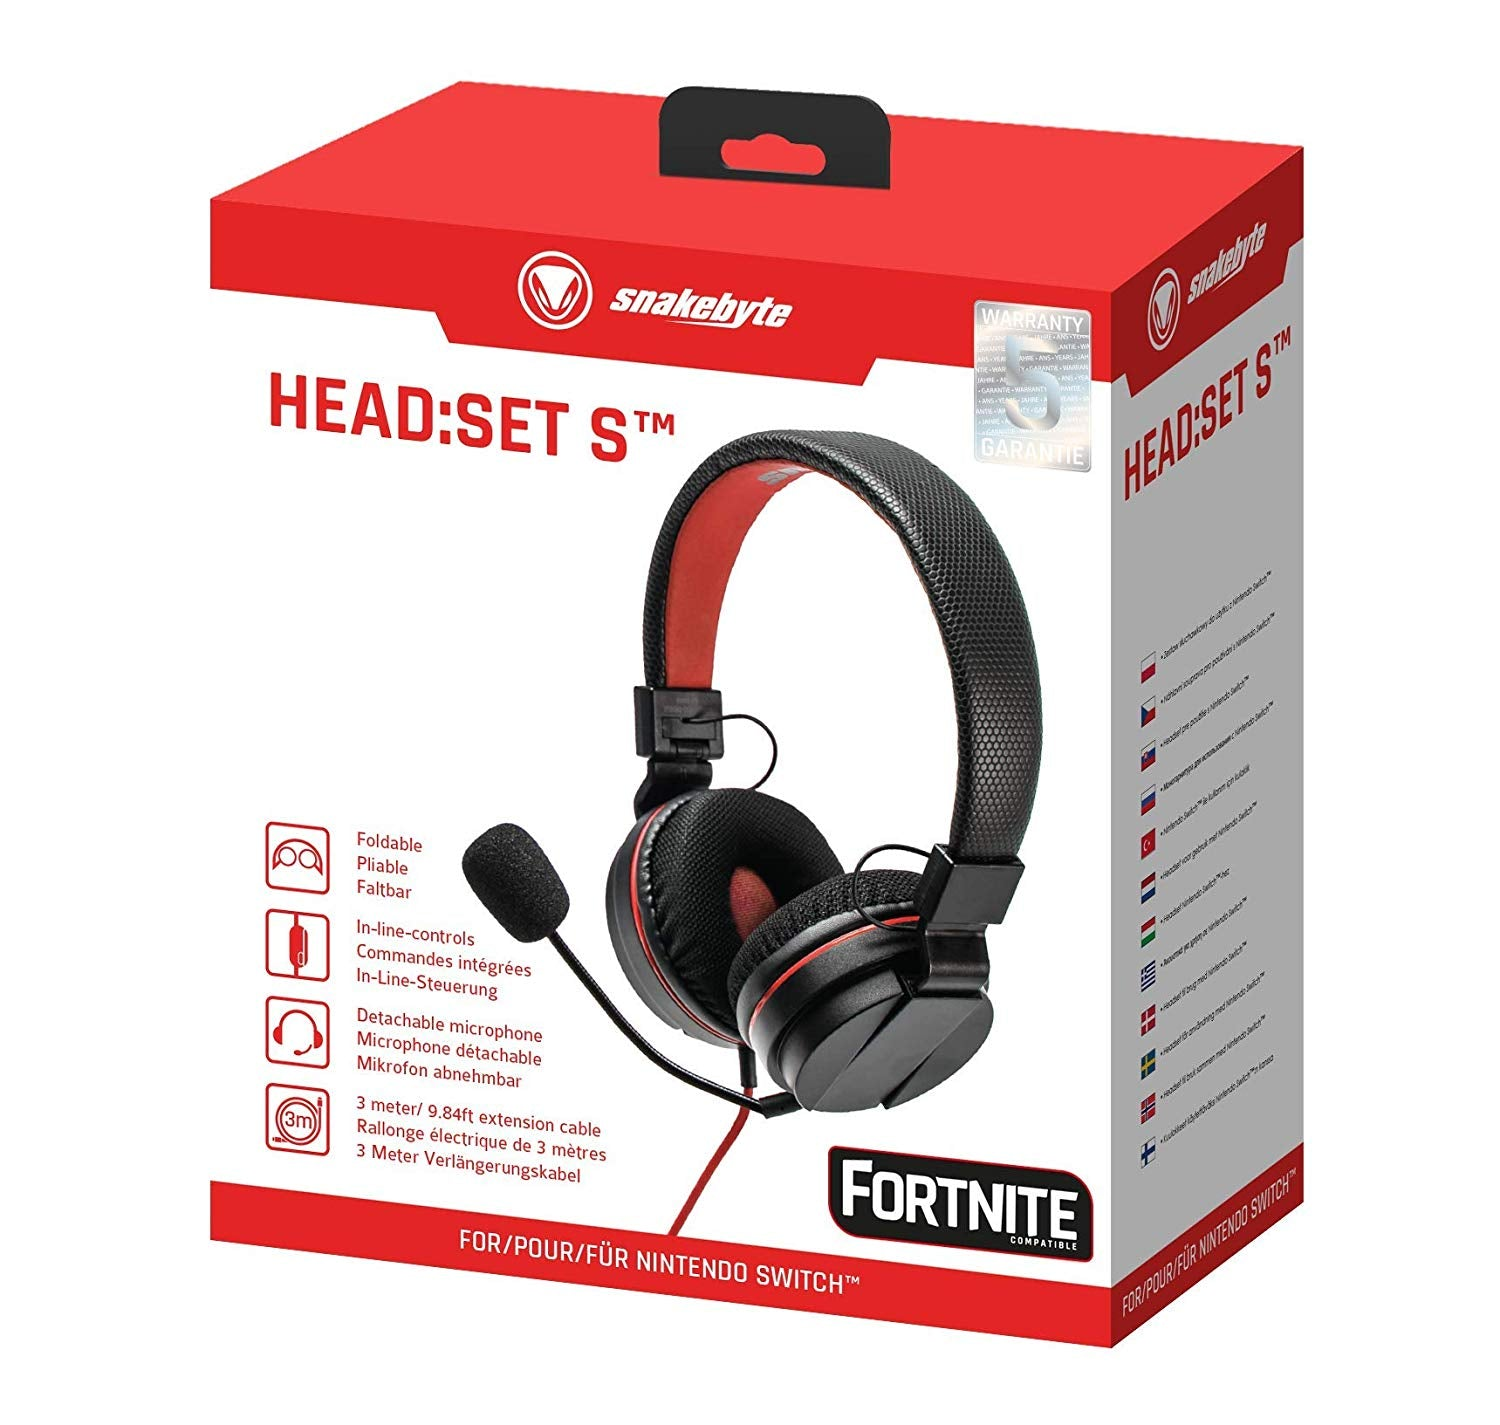 Snakebyte Headset S Stereo for use with Nintendo Switch